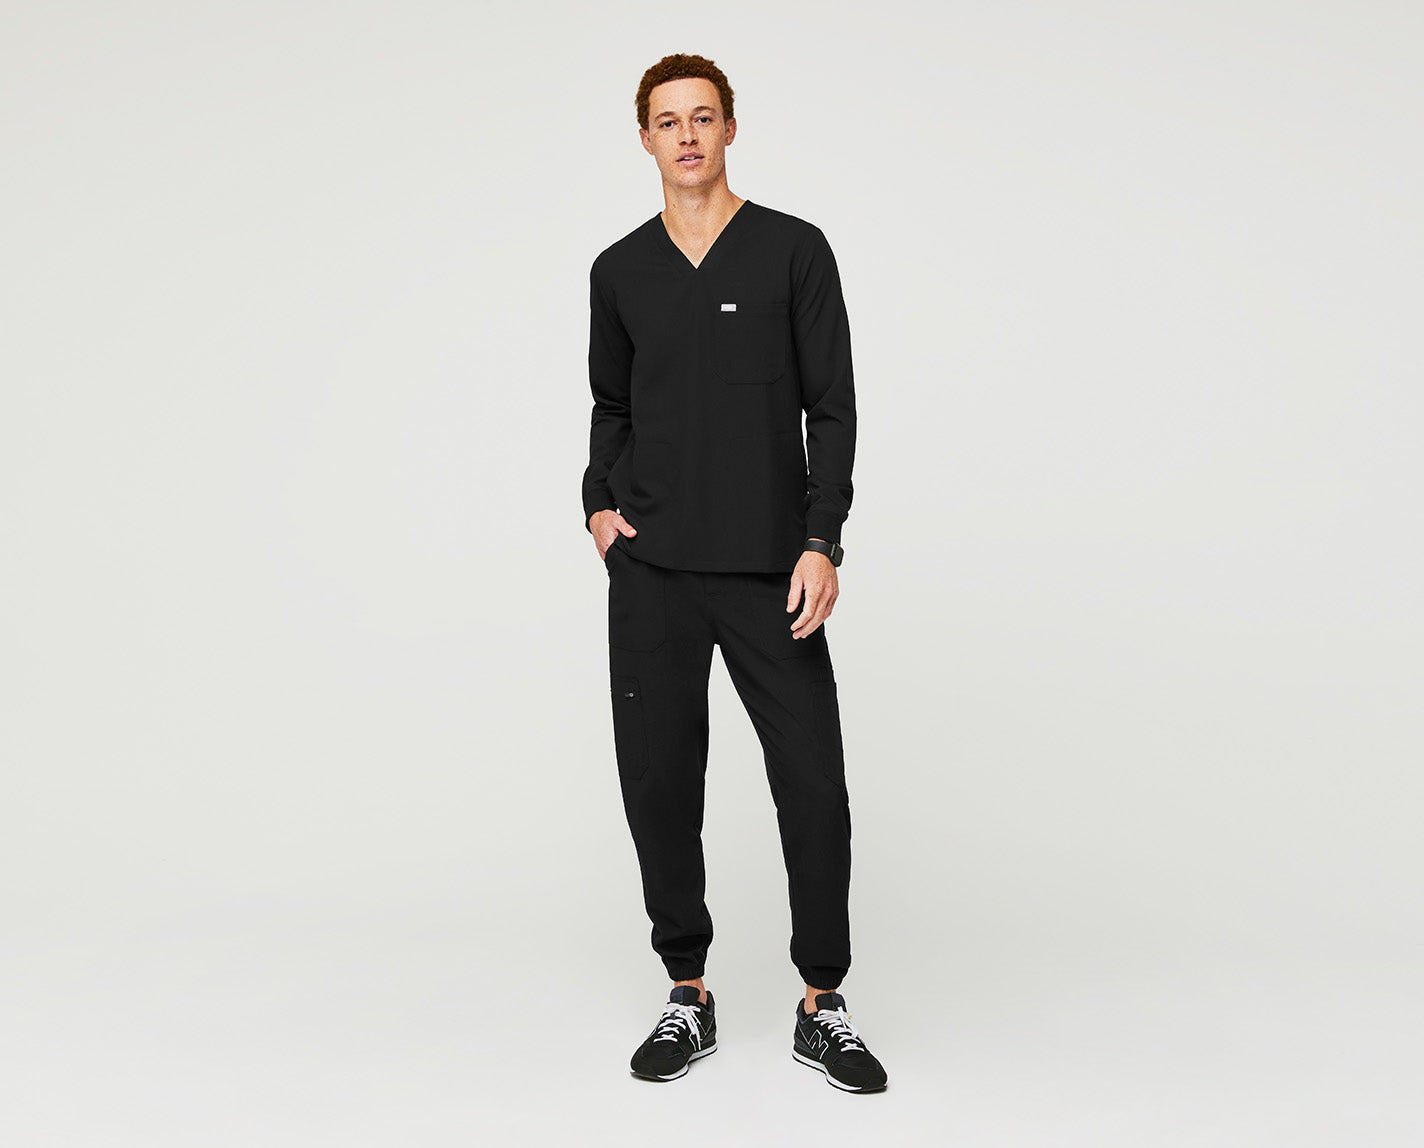 Sometimes you just need a long pair of sleeves. With three pockets, a tailored fit and long sleeves, the Longsleeve Chisec provides you with a reliable option on those days when you need a little more coverage.